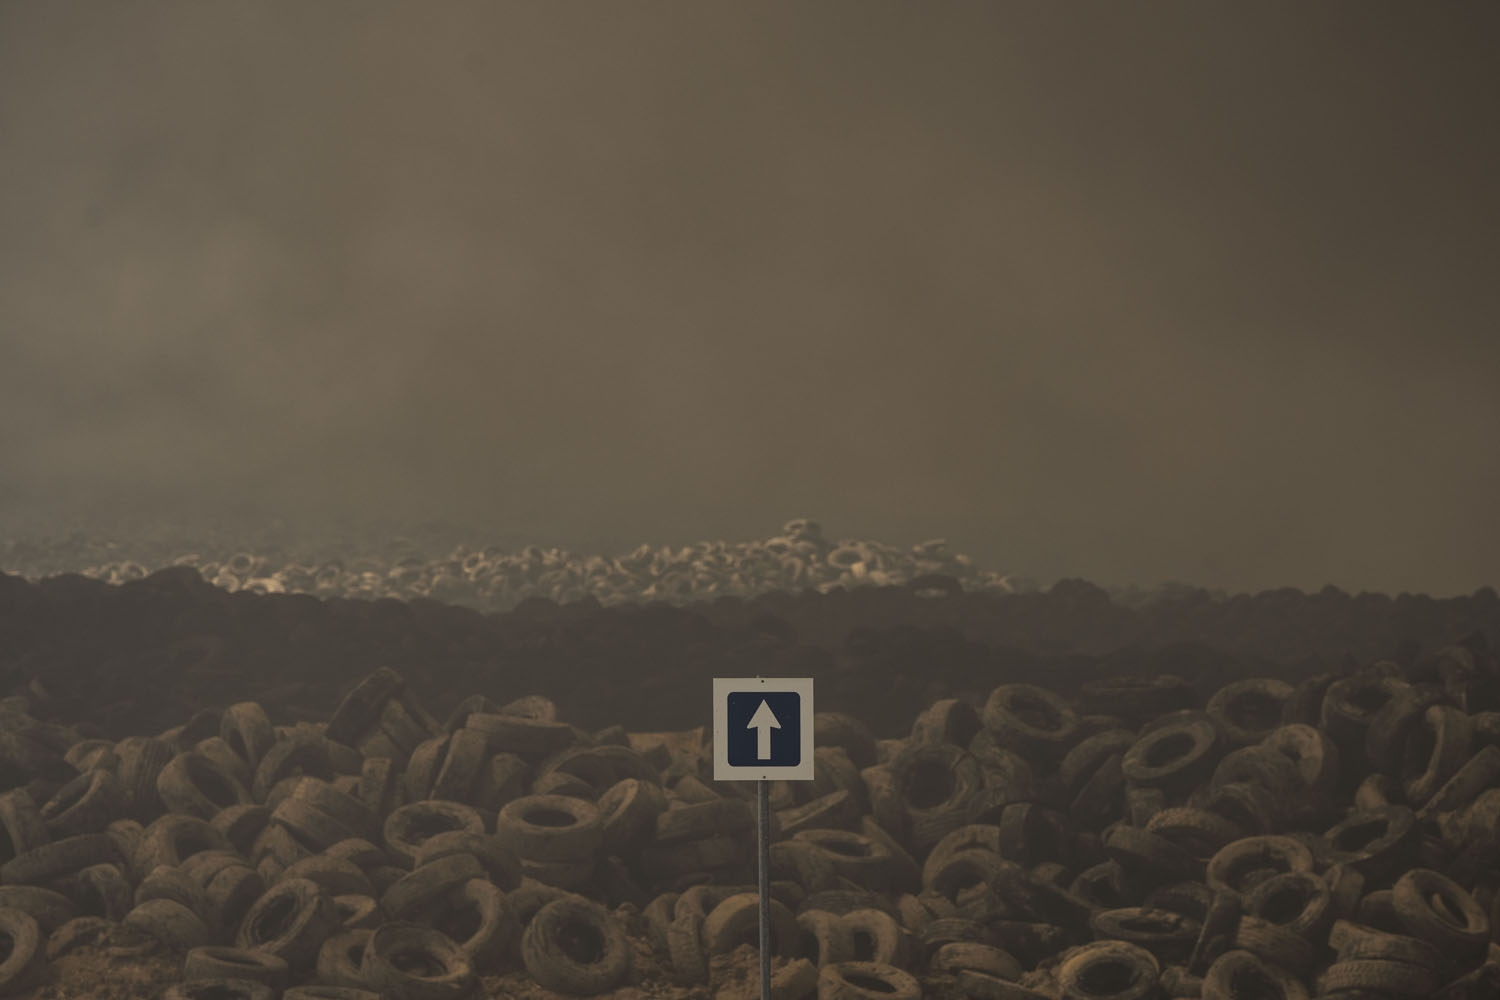 Tyres burn in an uncontrolled dump near the town of Sesena, after a fire brokeout early on May 13, 201